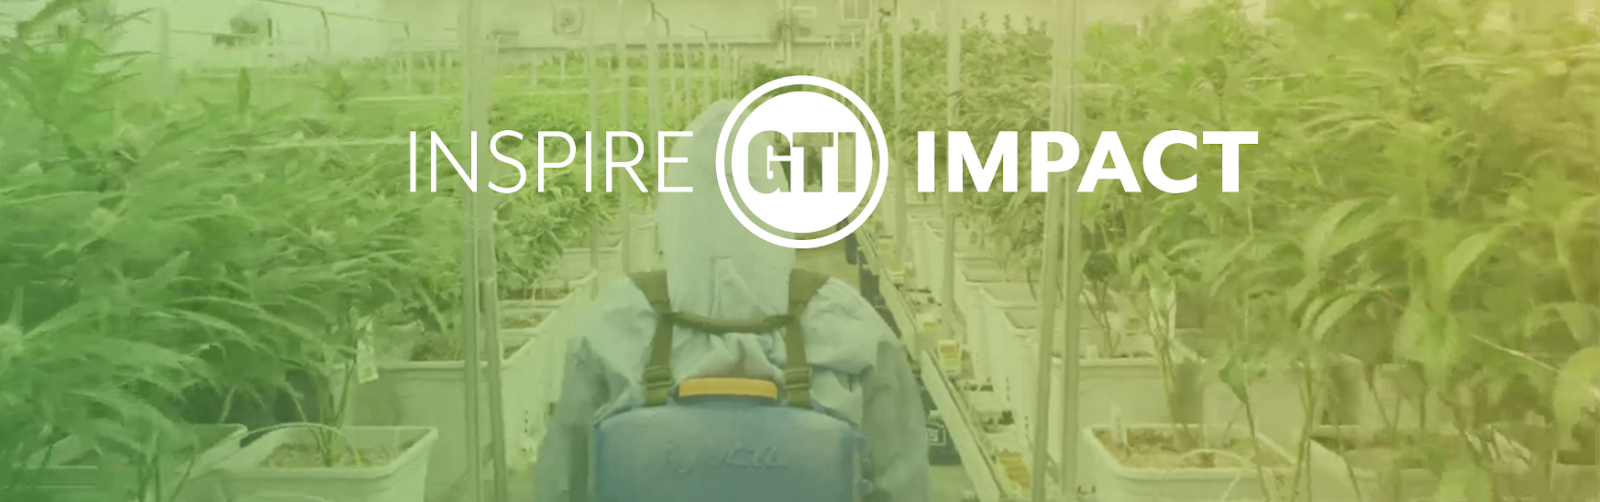 Green Thumb Industries: 278% Revenue Growth And Undervalued ...